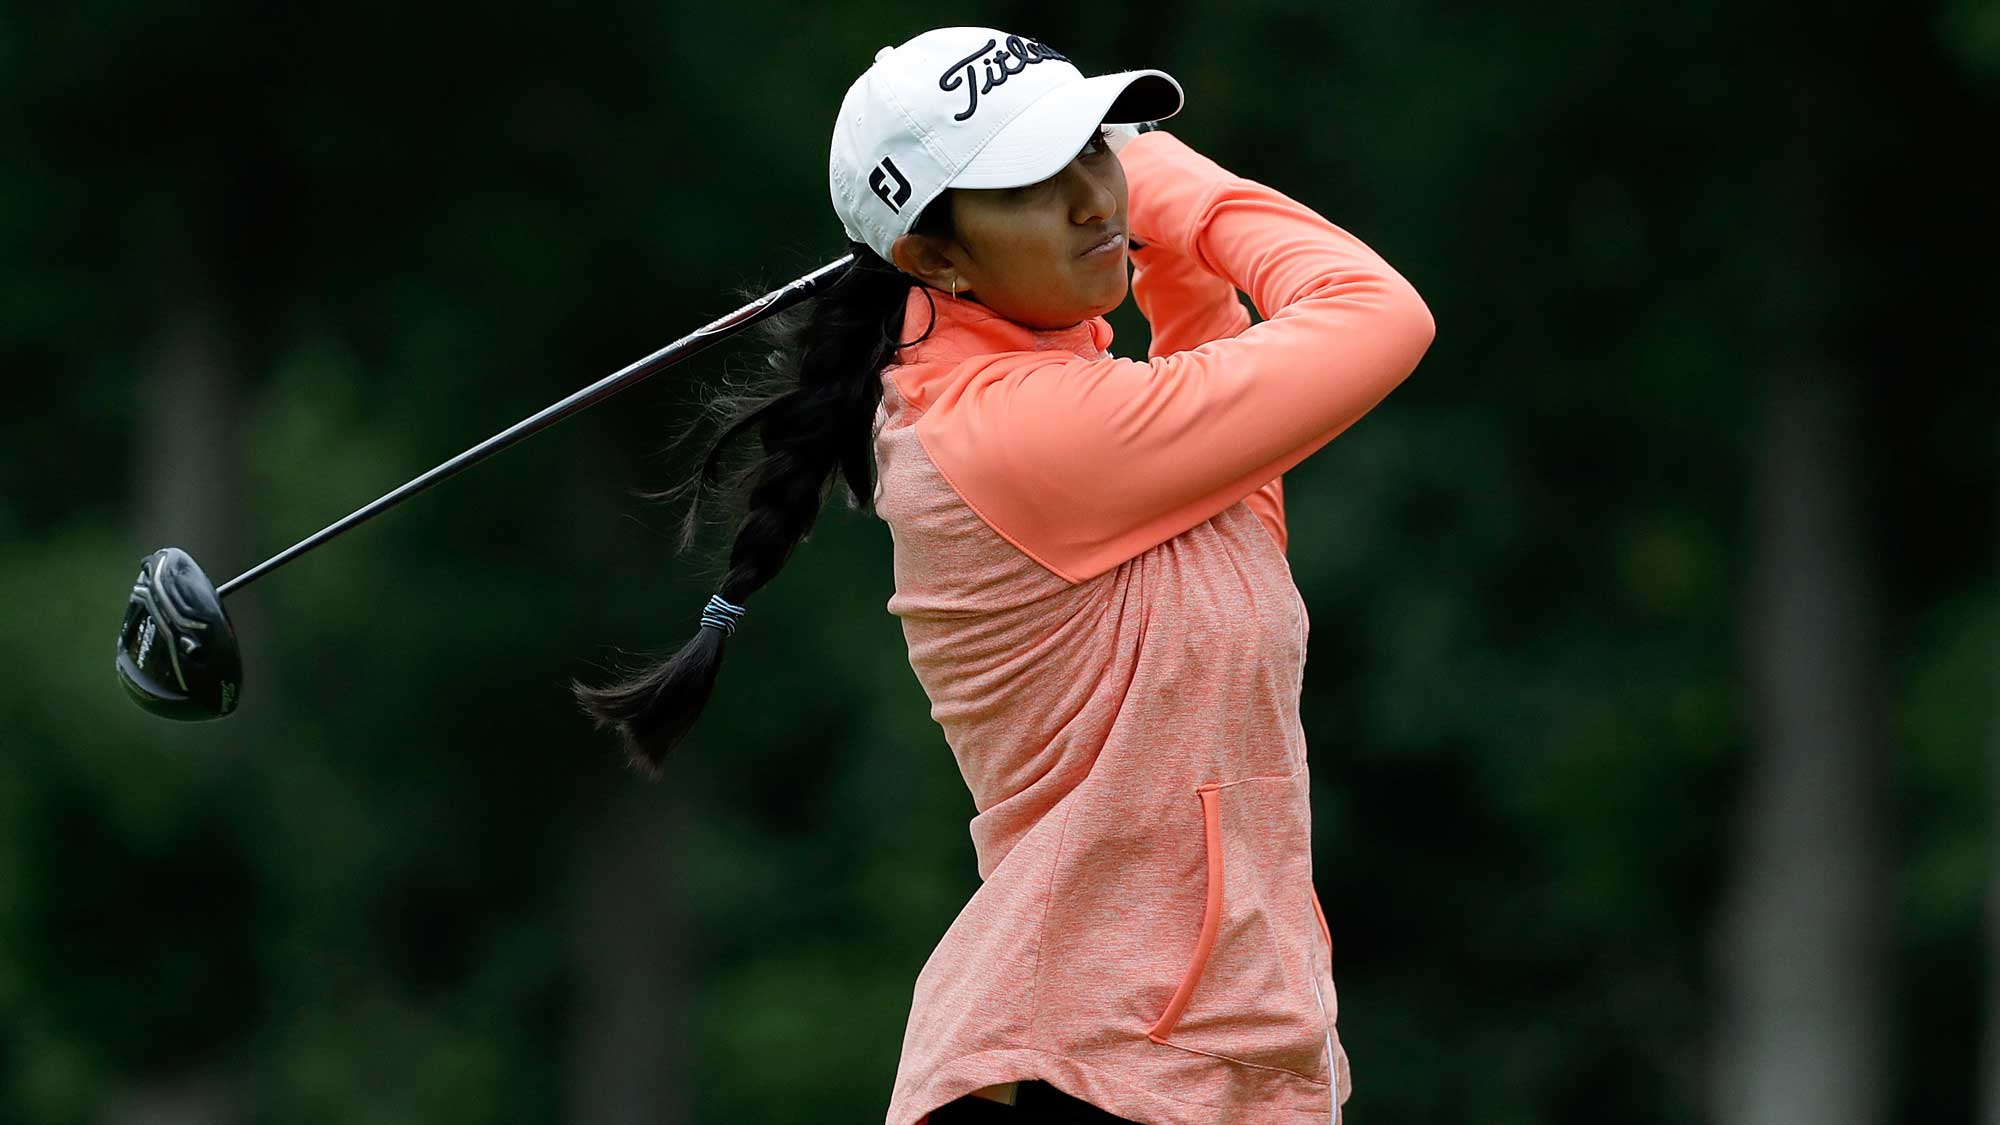 Aditi Ashok of India hits her tee shot on the sixth hole during a practice round prior to the 2017 KPMG PGA Championship